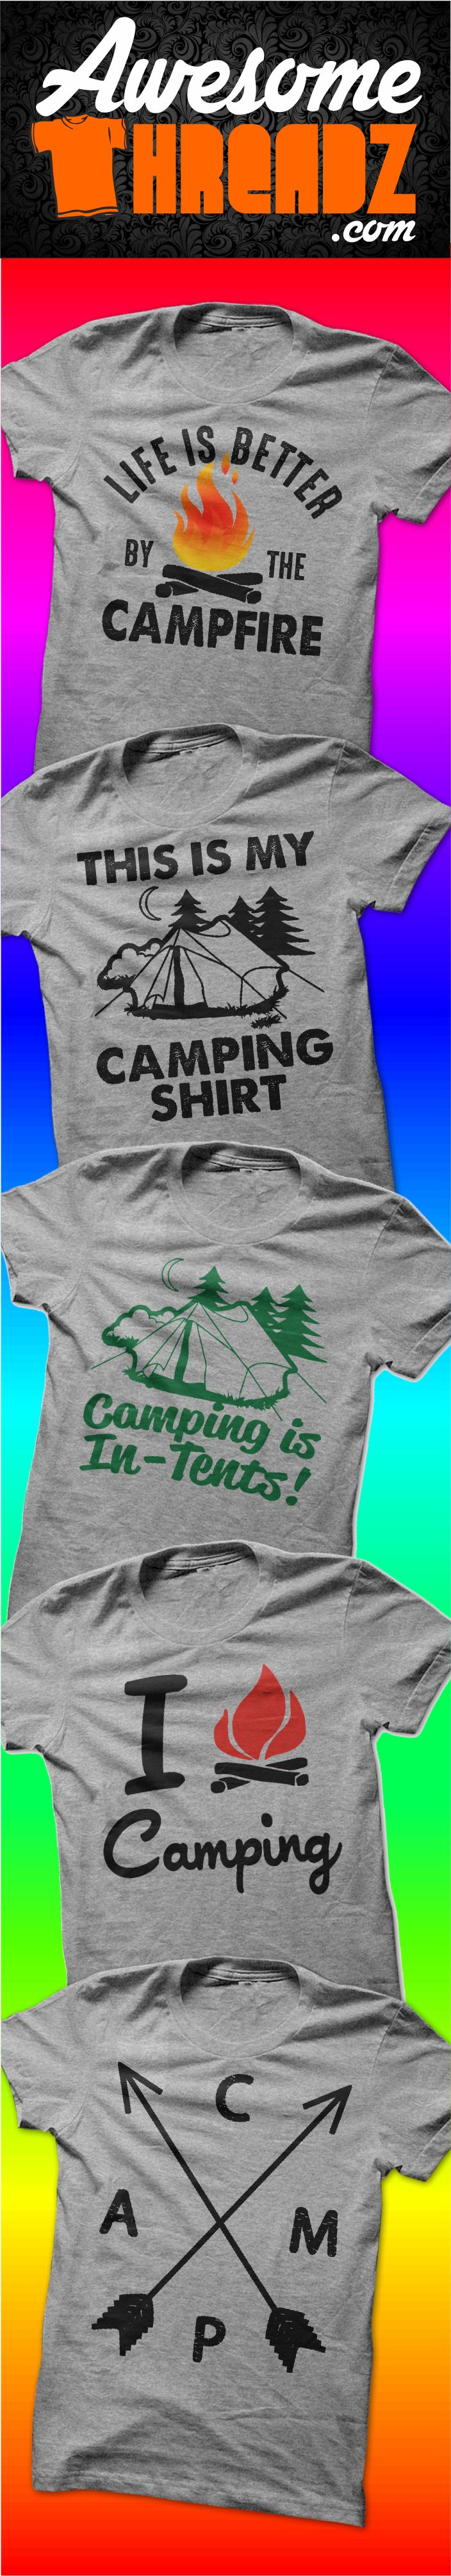 Camping T-Shirts From Awesome Threadz